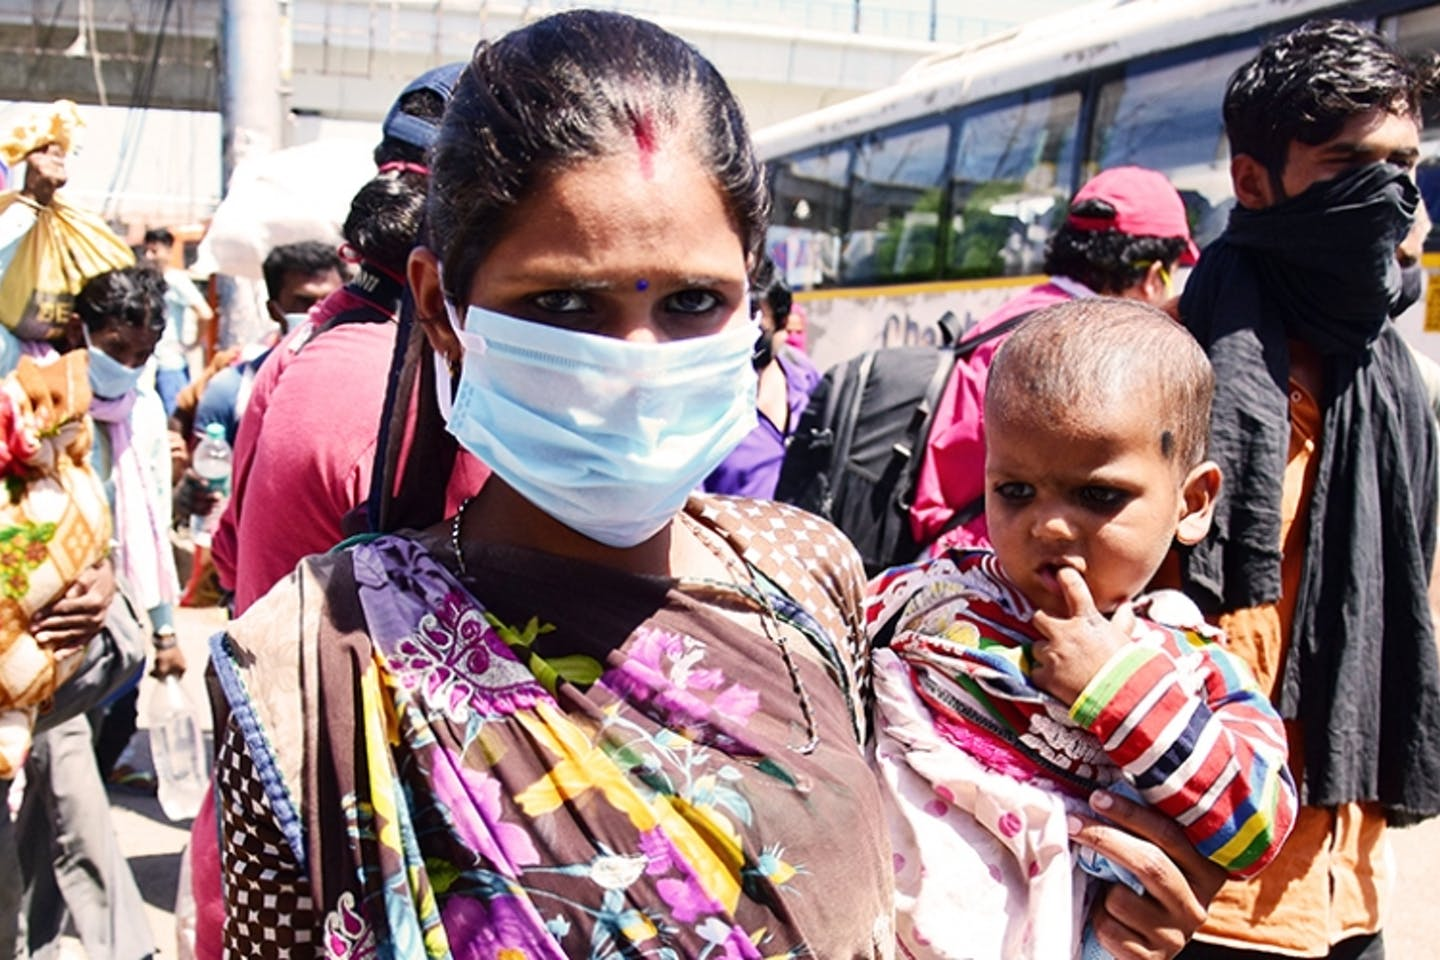 A woman with her baby at a bus stop in Delhi. Women in developing countries are being hit hardest by the coronavirus pandemic. Image: rajput/SOPA Images/Shutterstock